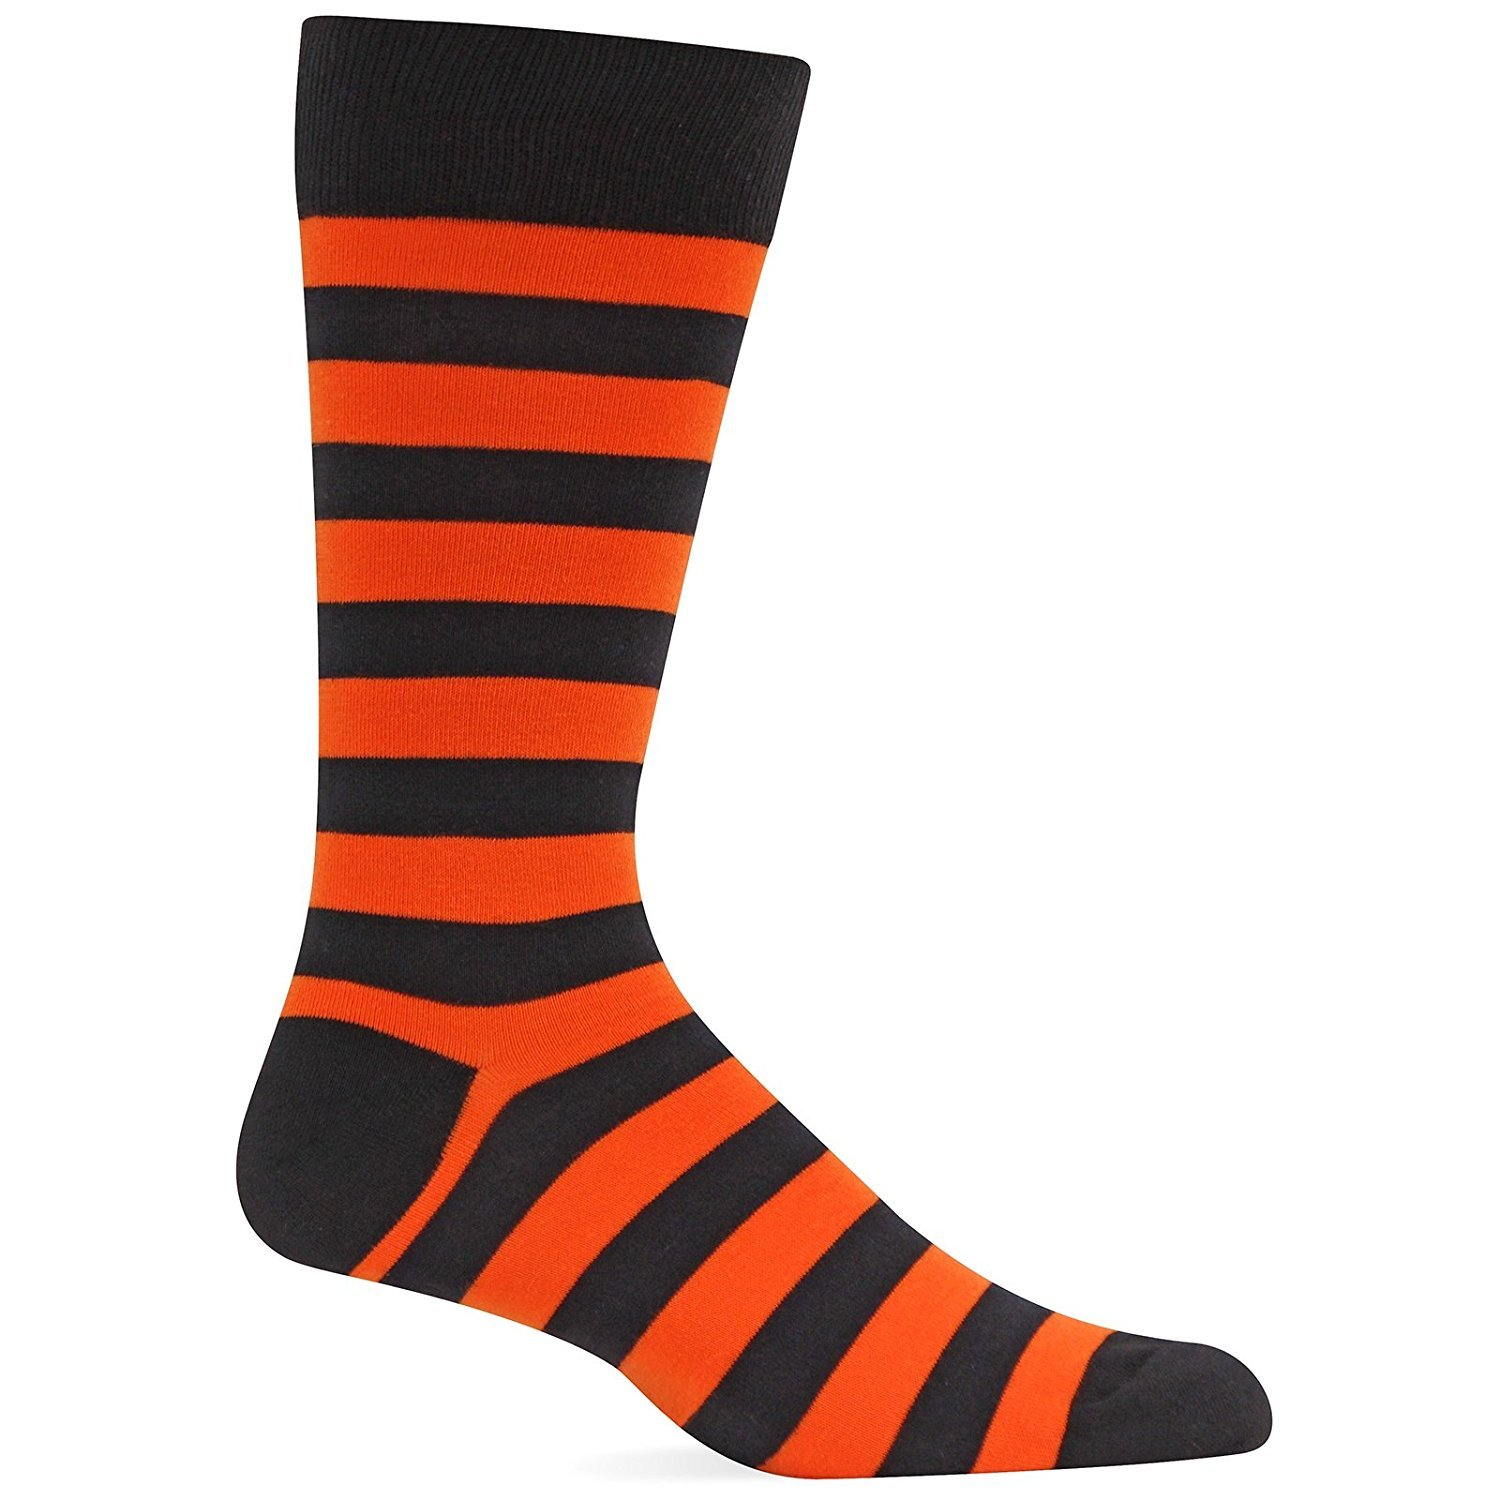 Hot Sox Mens Slack Crew, Holiday Stripe Orang - Size: 10-13, Comes With a Helicase Brand Sock Ring